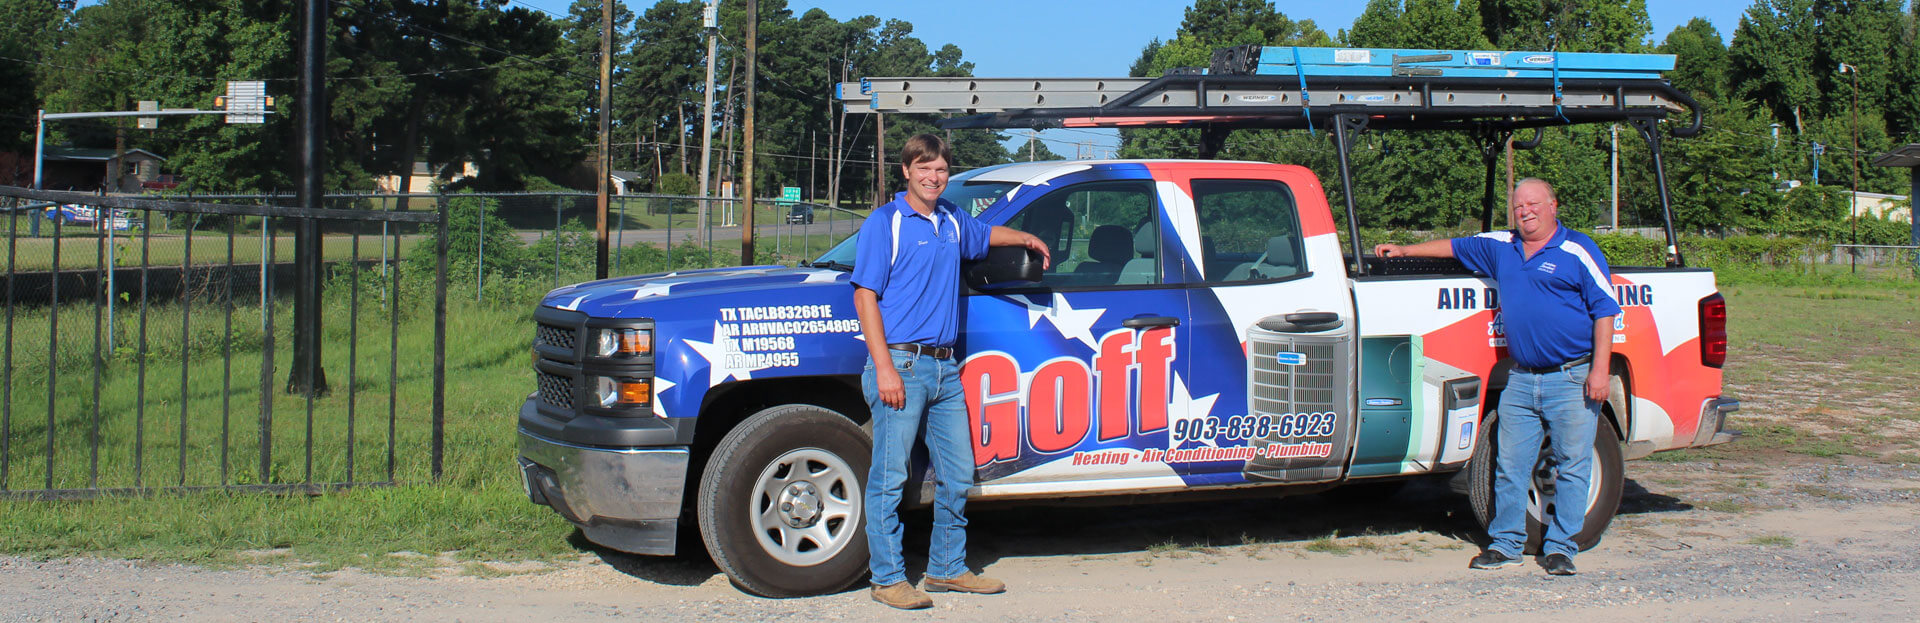 Goff Heating, Air Conditioning & Plumbing